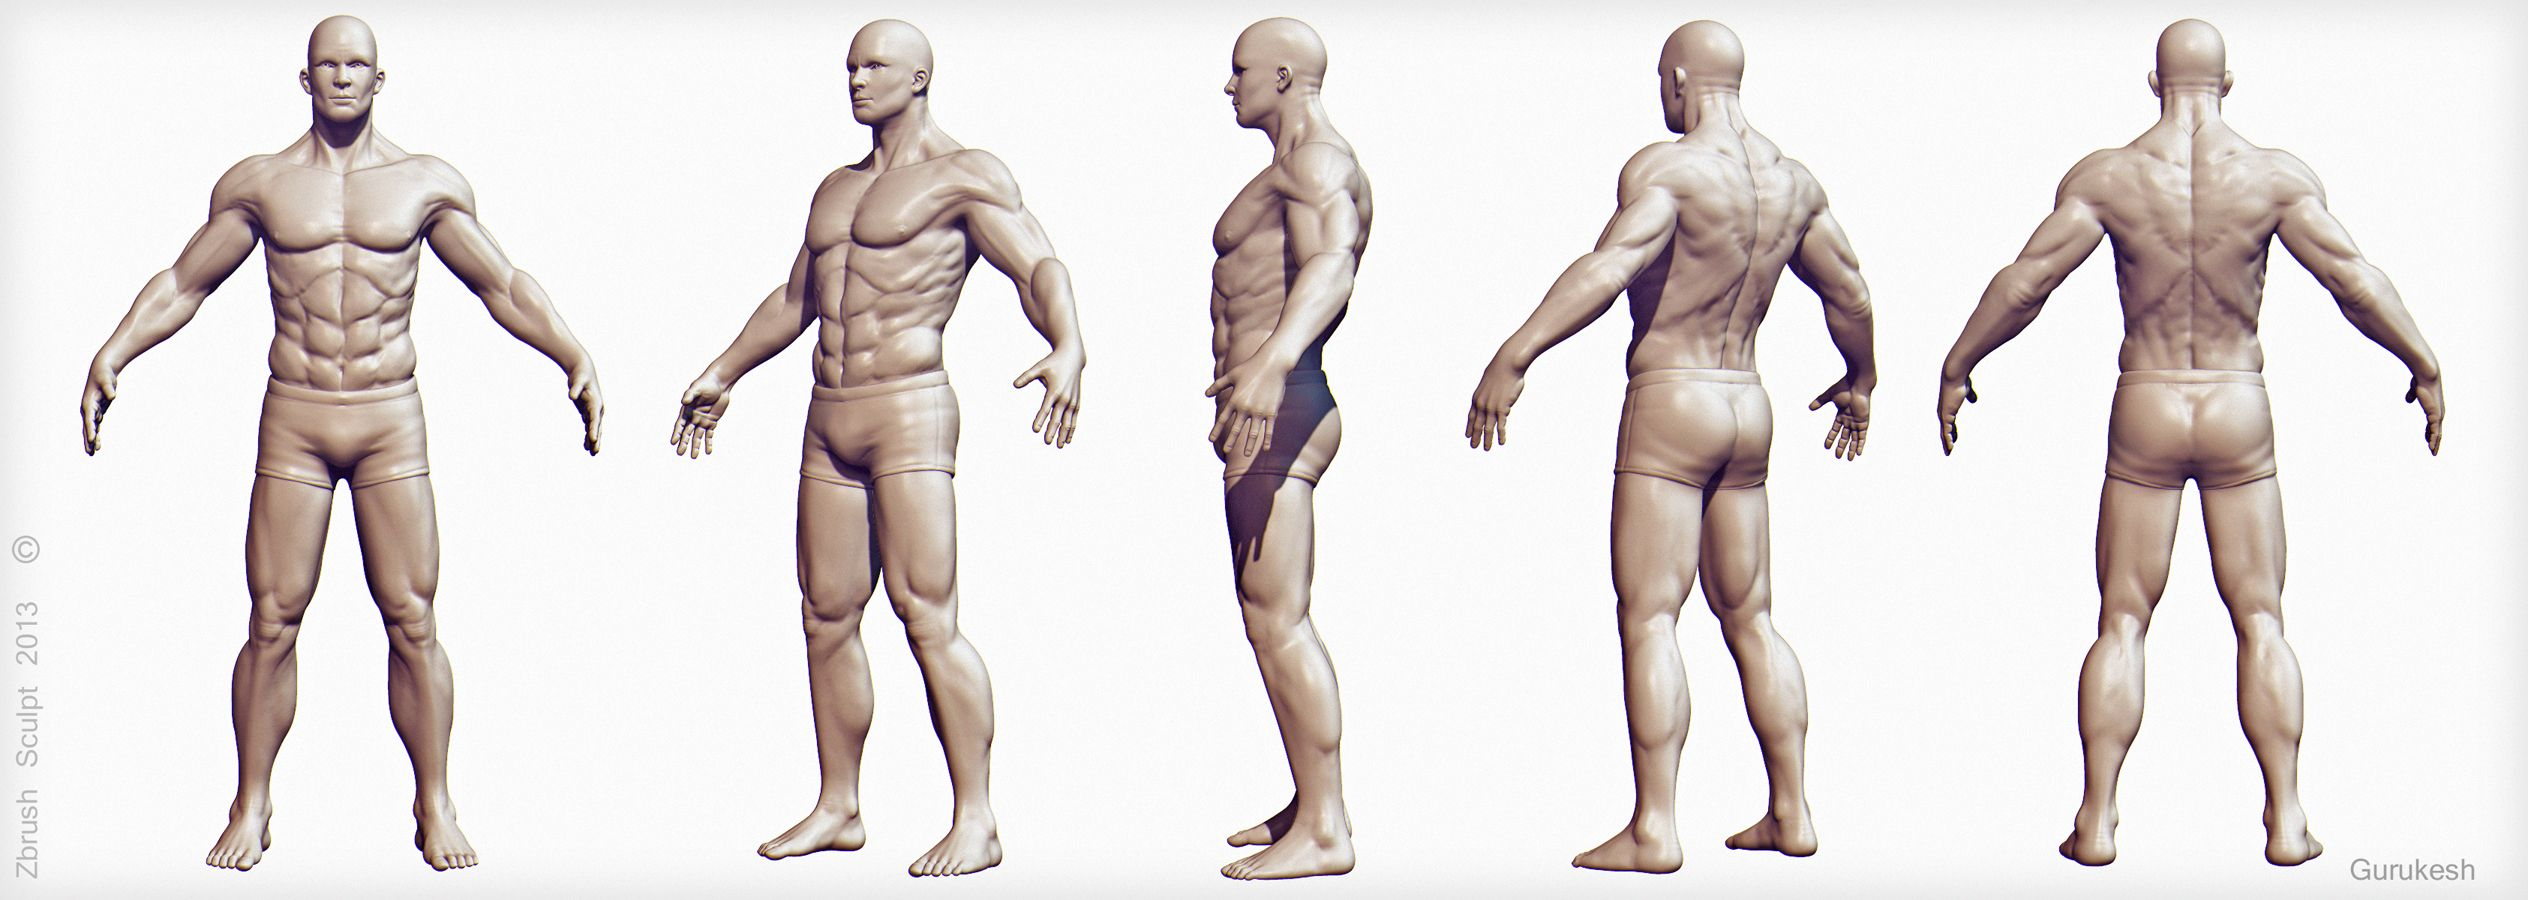 Male Anatomy For Artists Images Human Body Anatomy